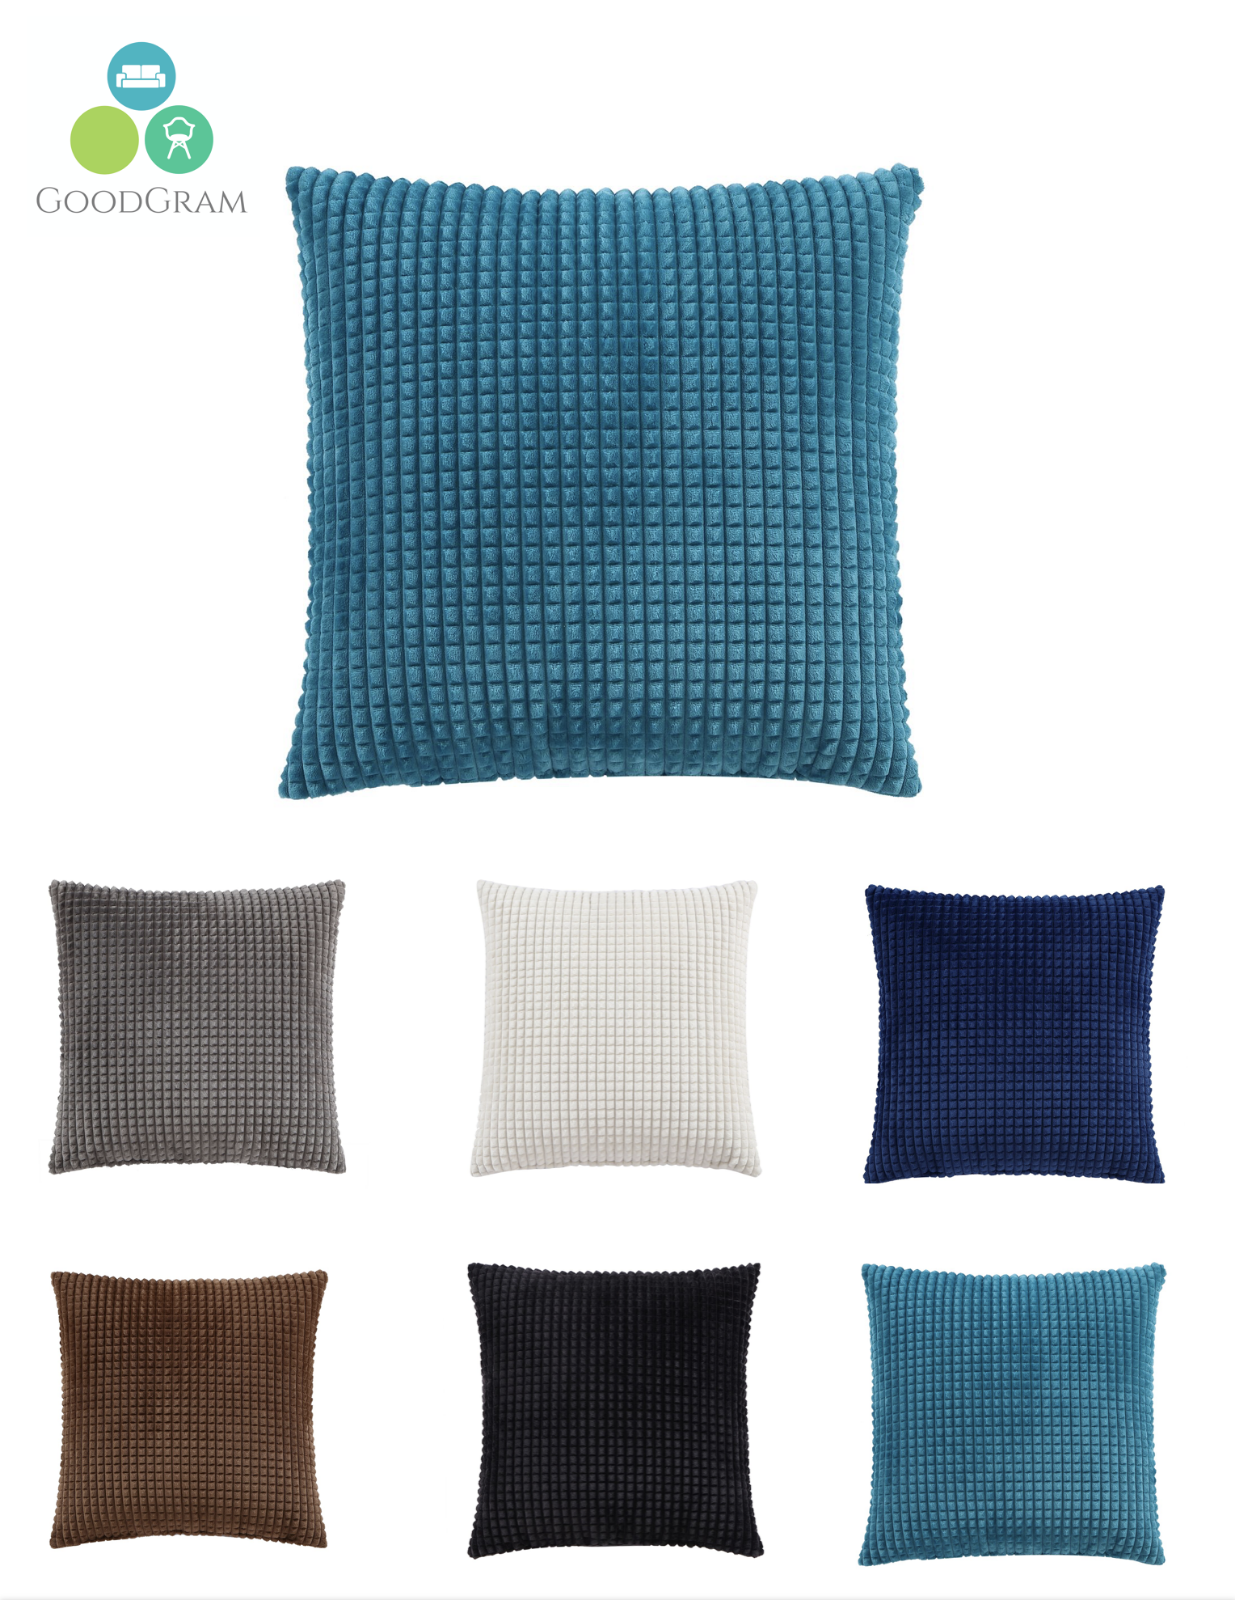 Ultra Plush Over Sized & Over Filled Tufted Throw Pillows -